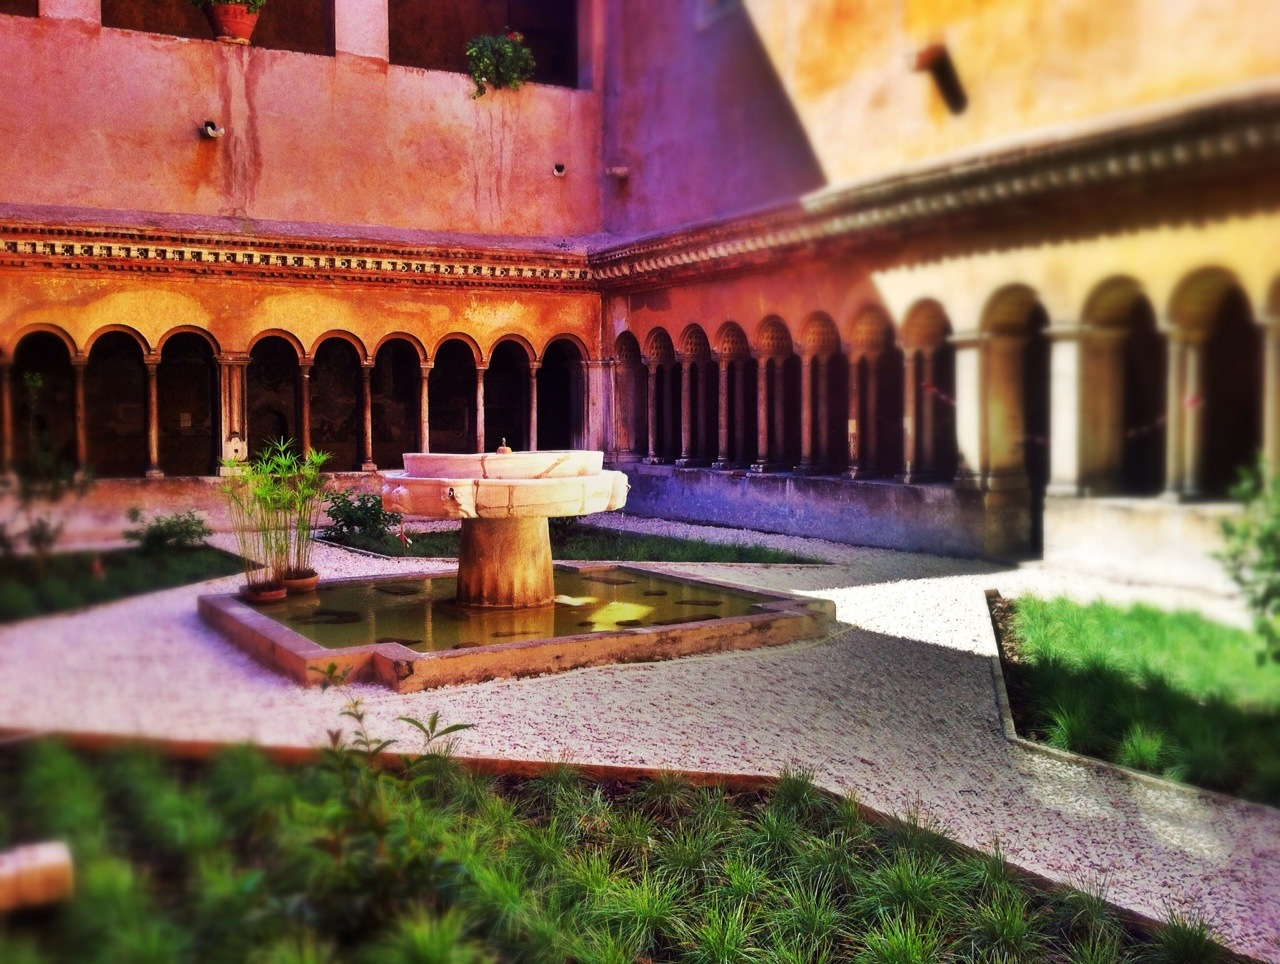 Cloister at the Santi Quattro Basilica